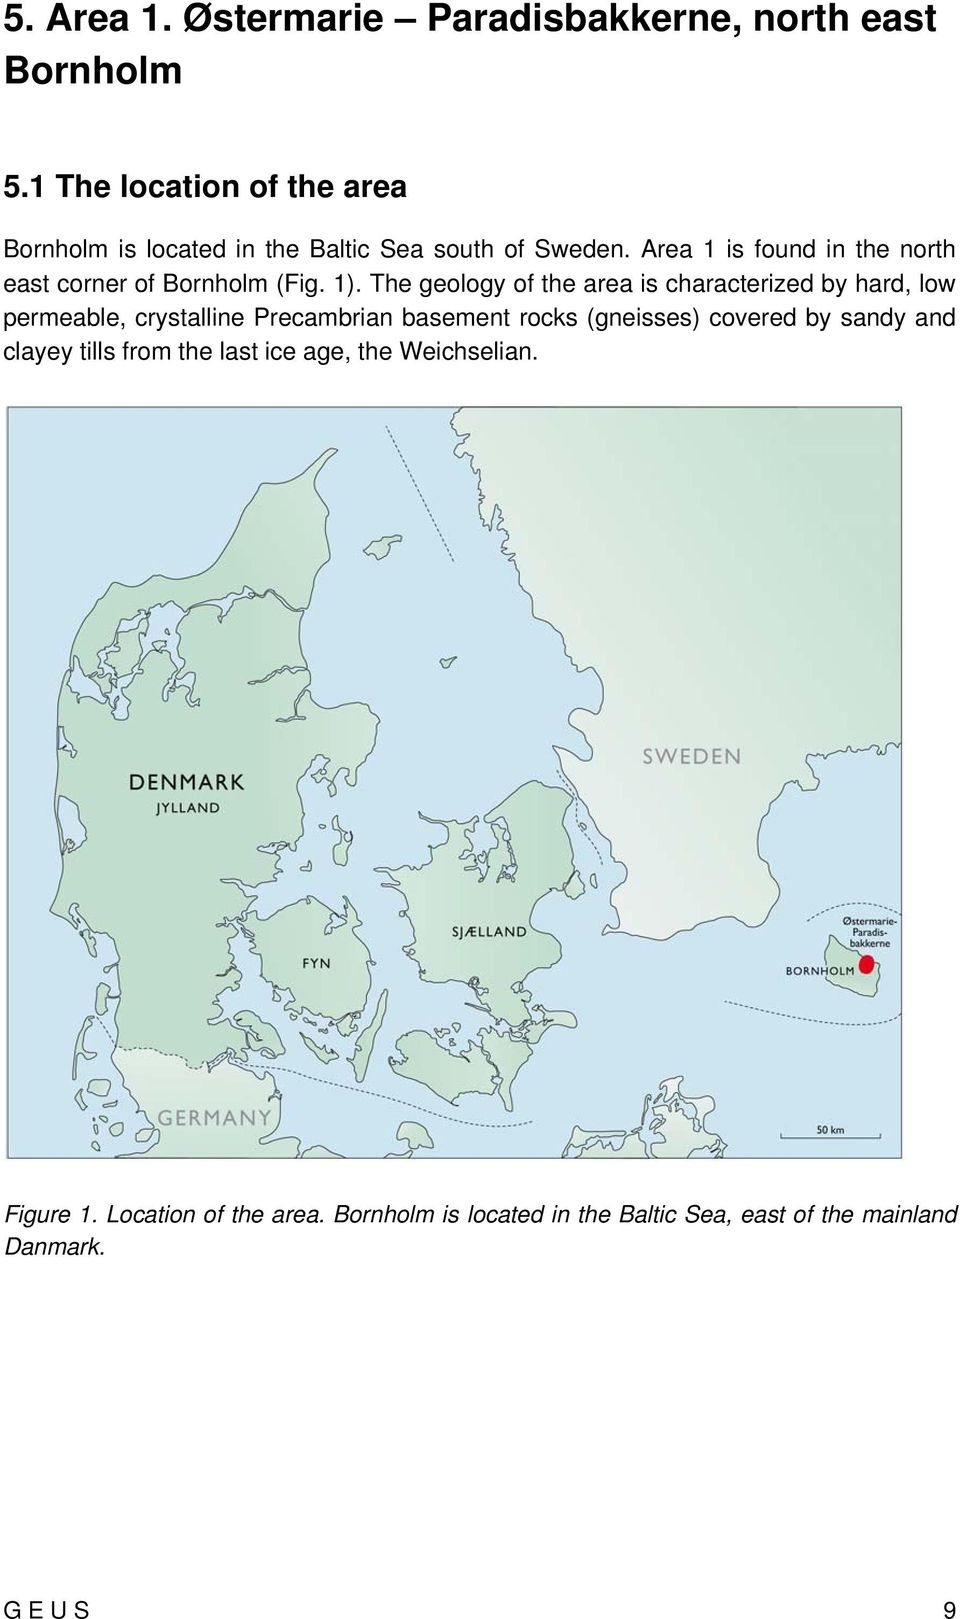 Area 1 is found in the north east corner of Bornholm (Fig. 1).